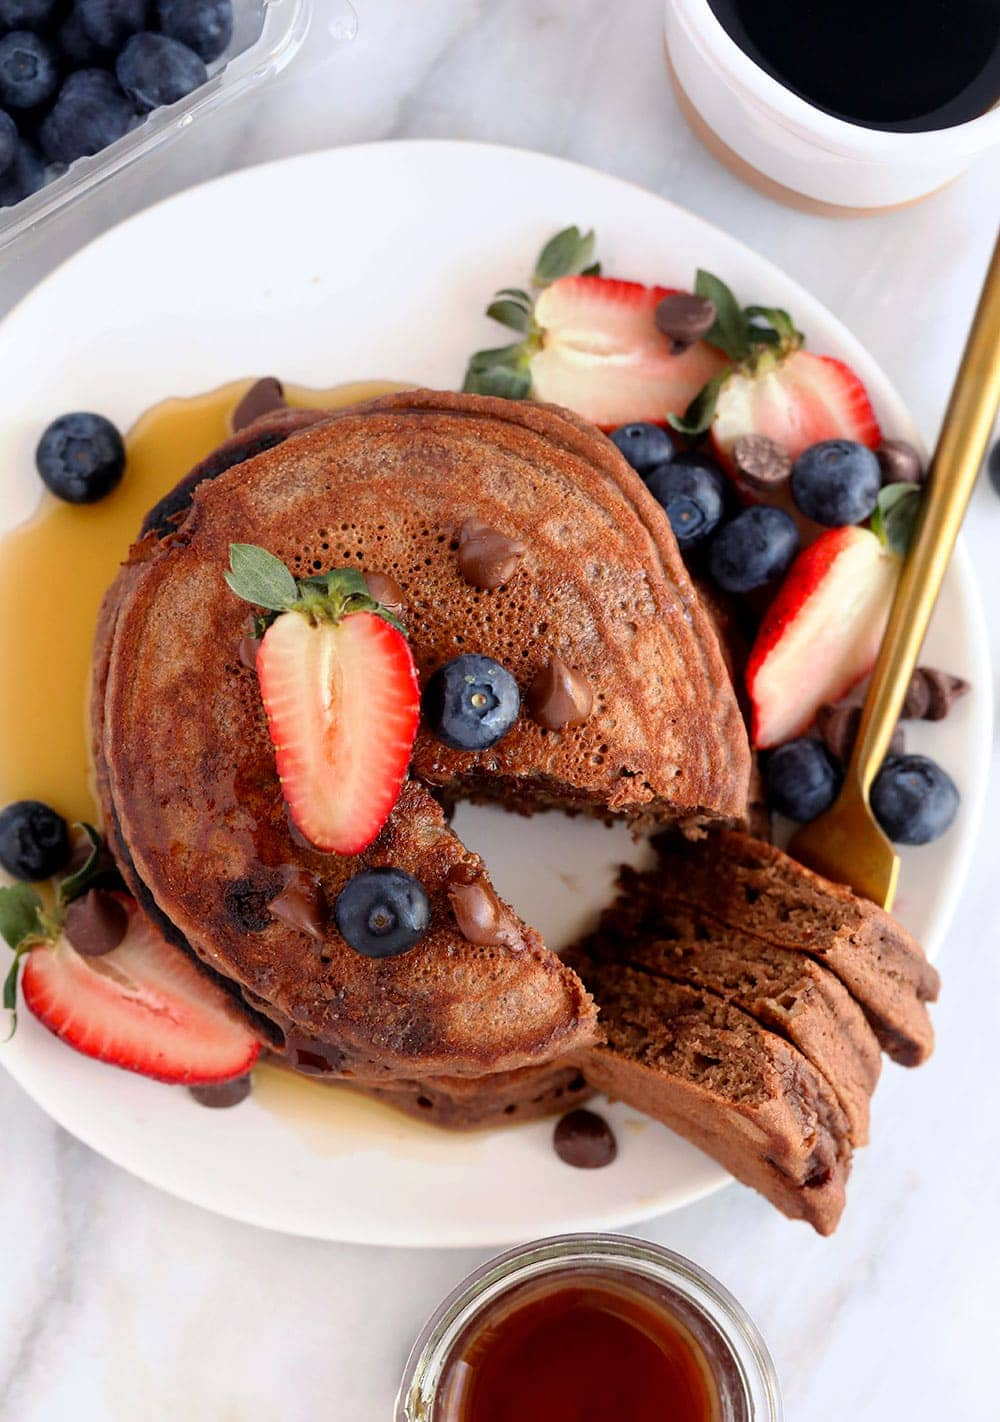 chocolate chocolate chip pancakes on a plate topped with blueberries and strawberries